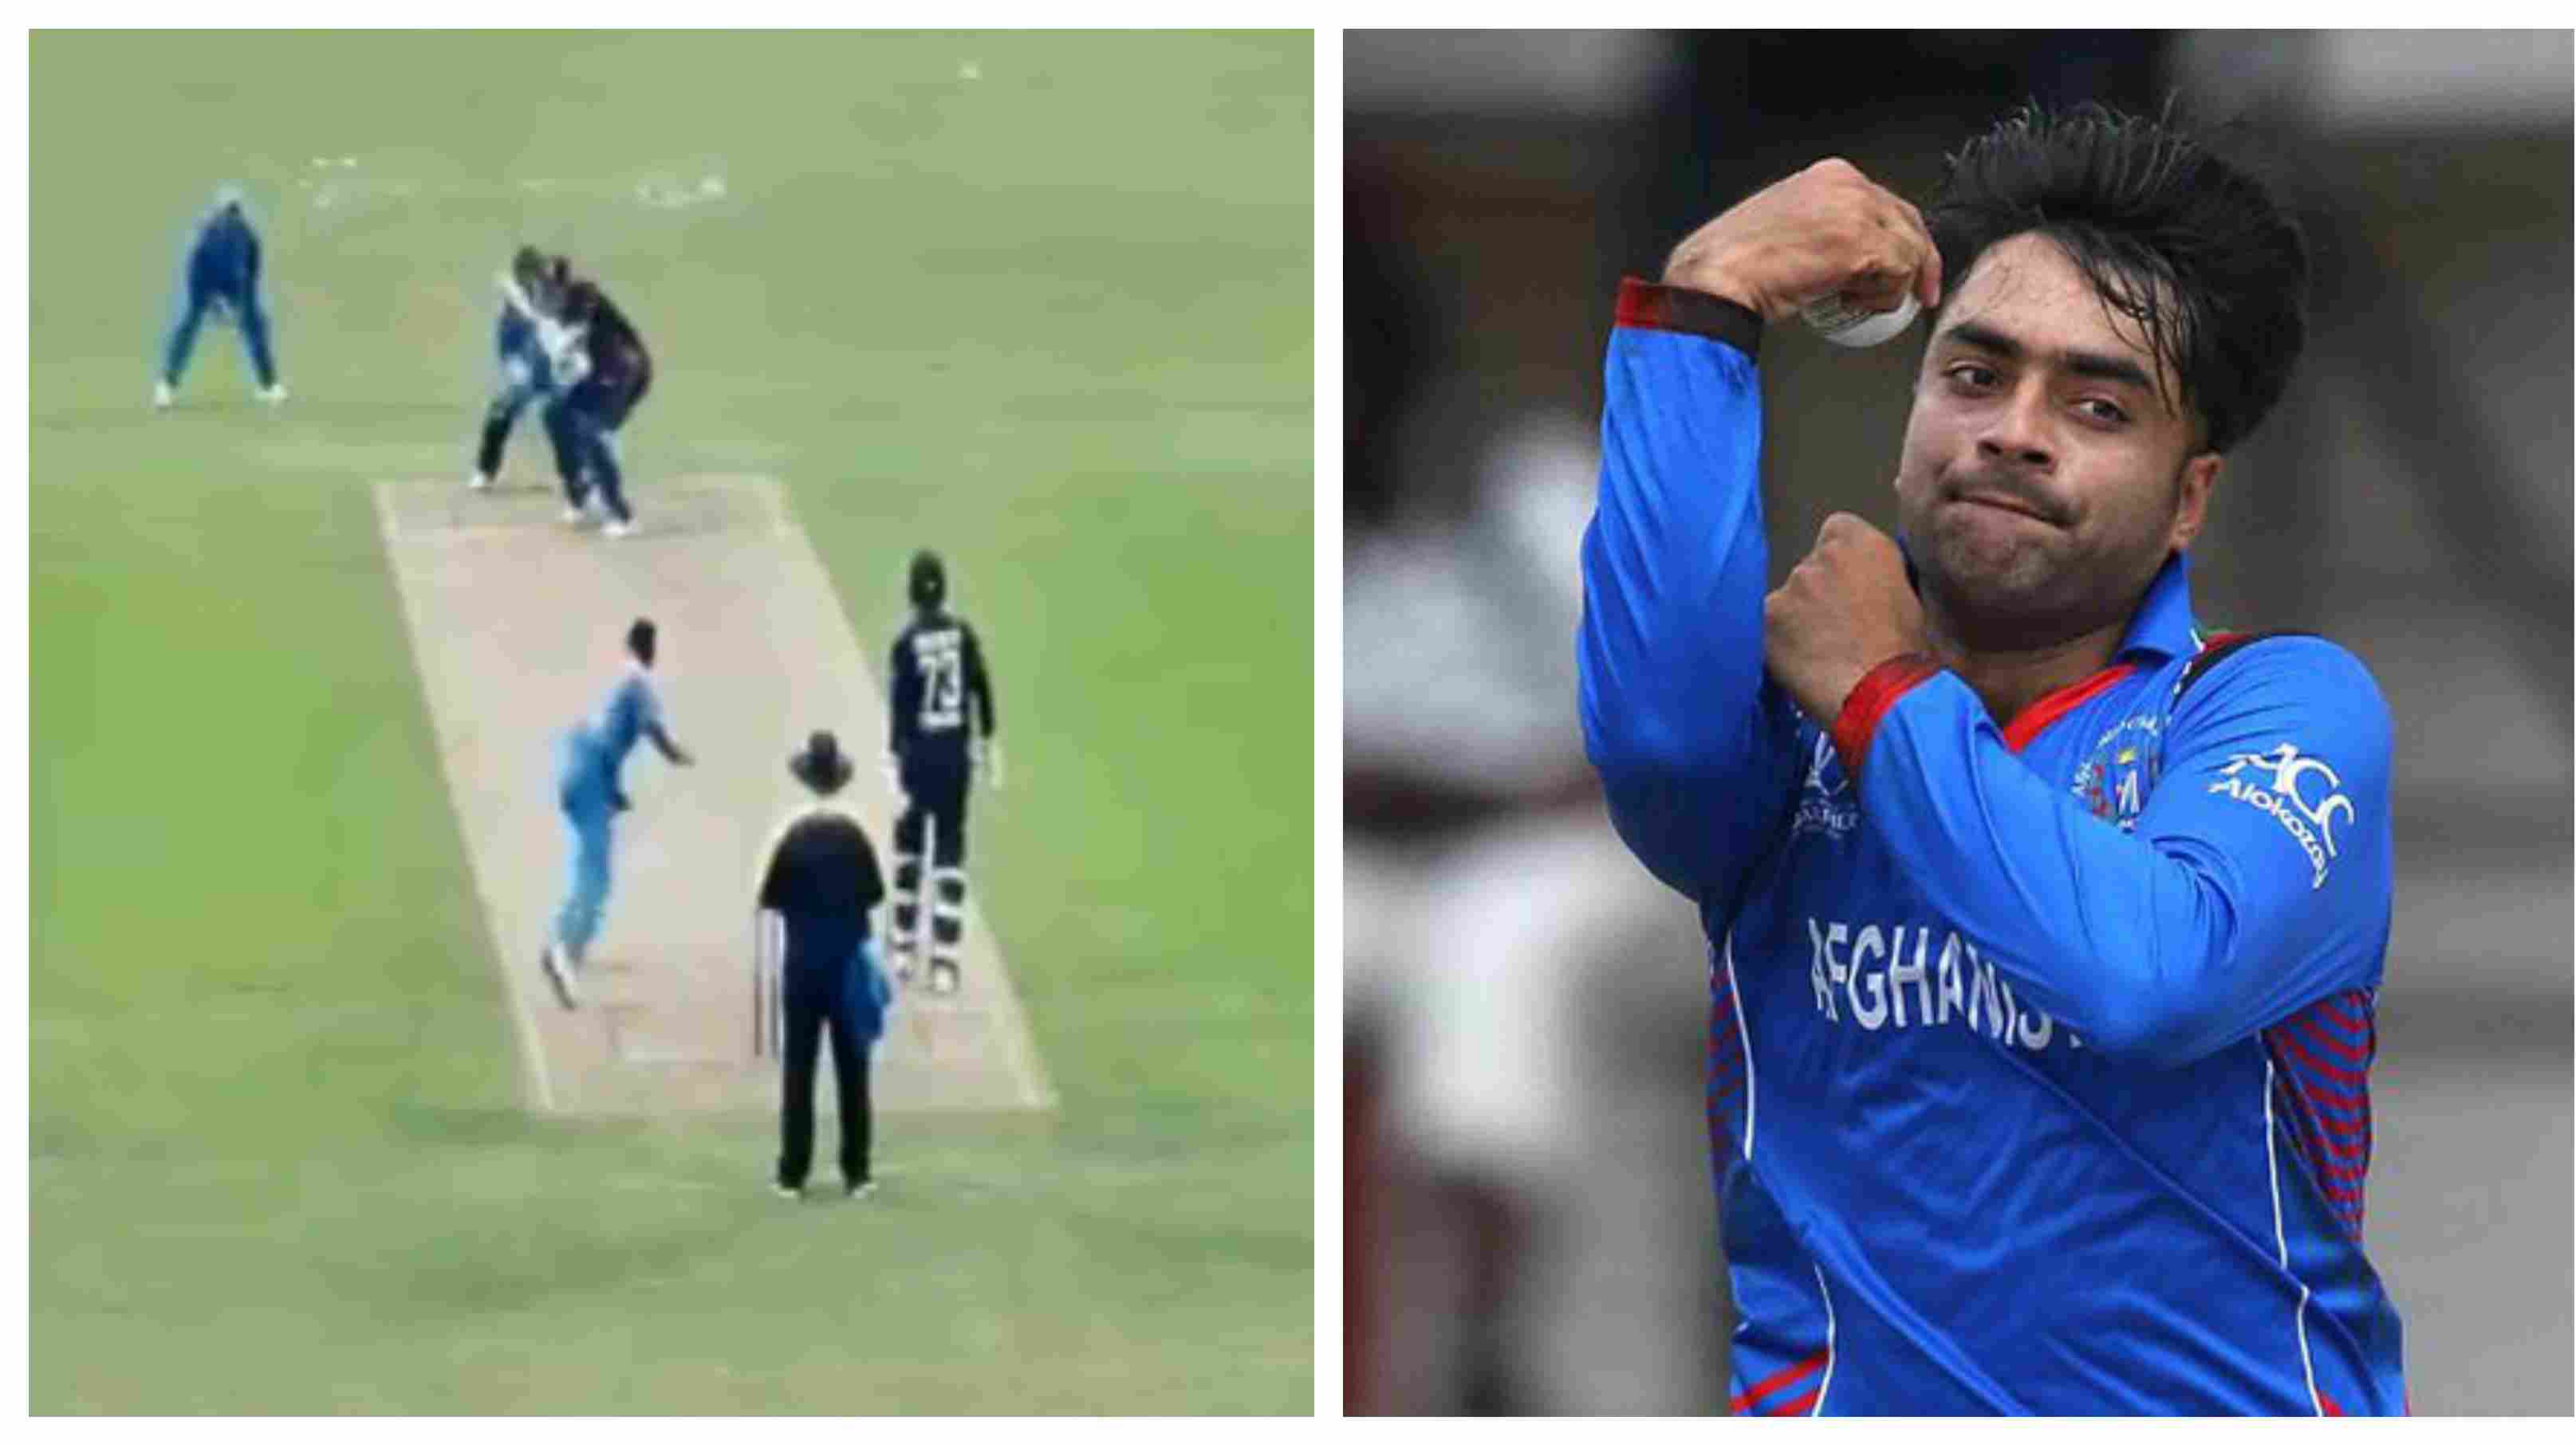 WATCH: Krunal Pandya bowls a bouncer to England Lions batsman, Rashid Khan extends his support